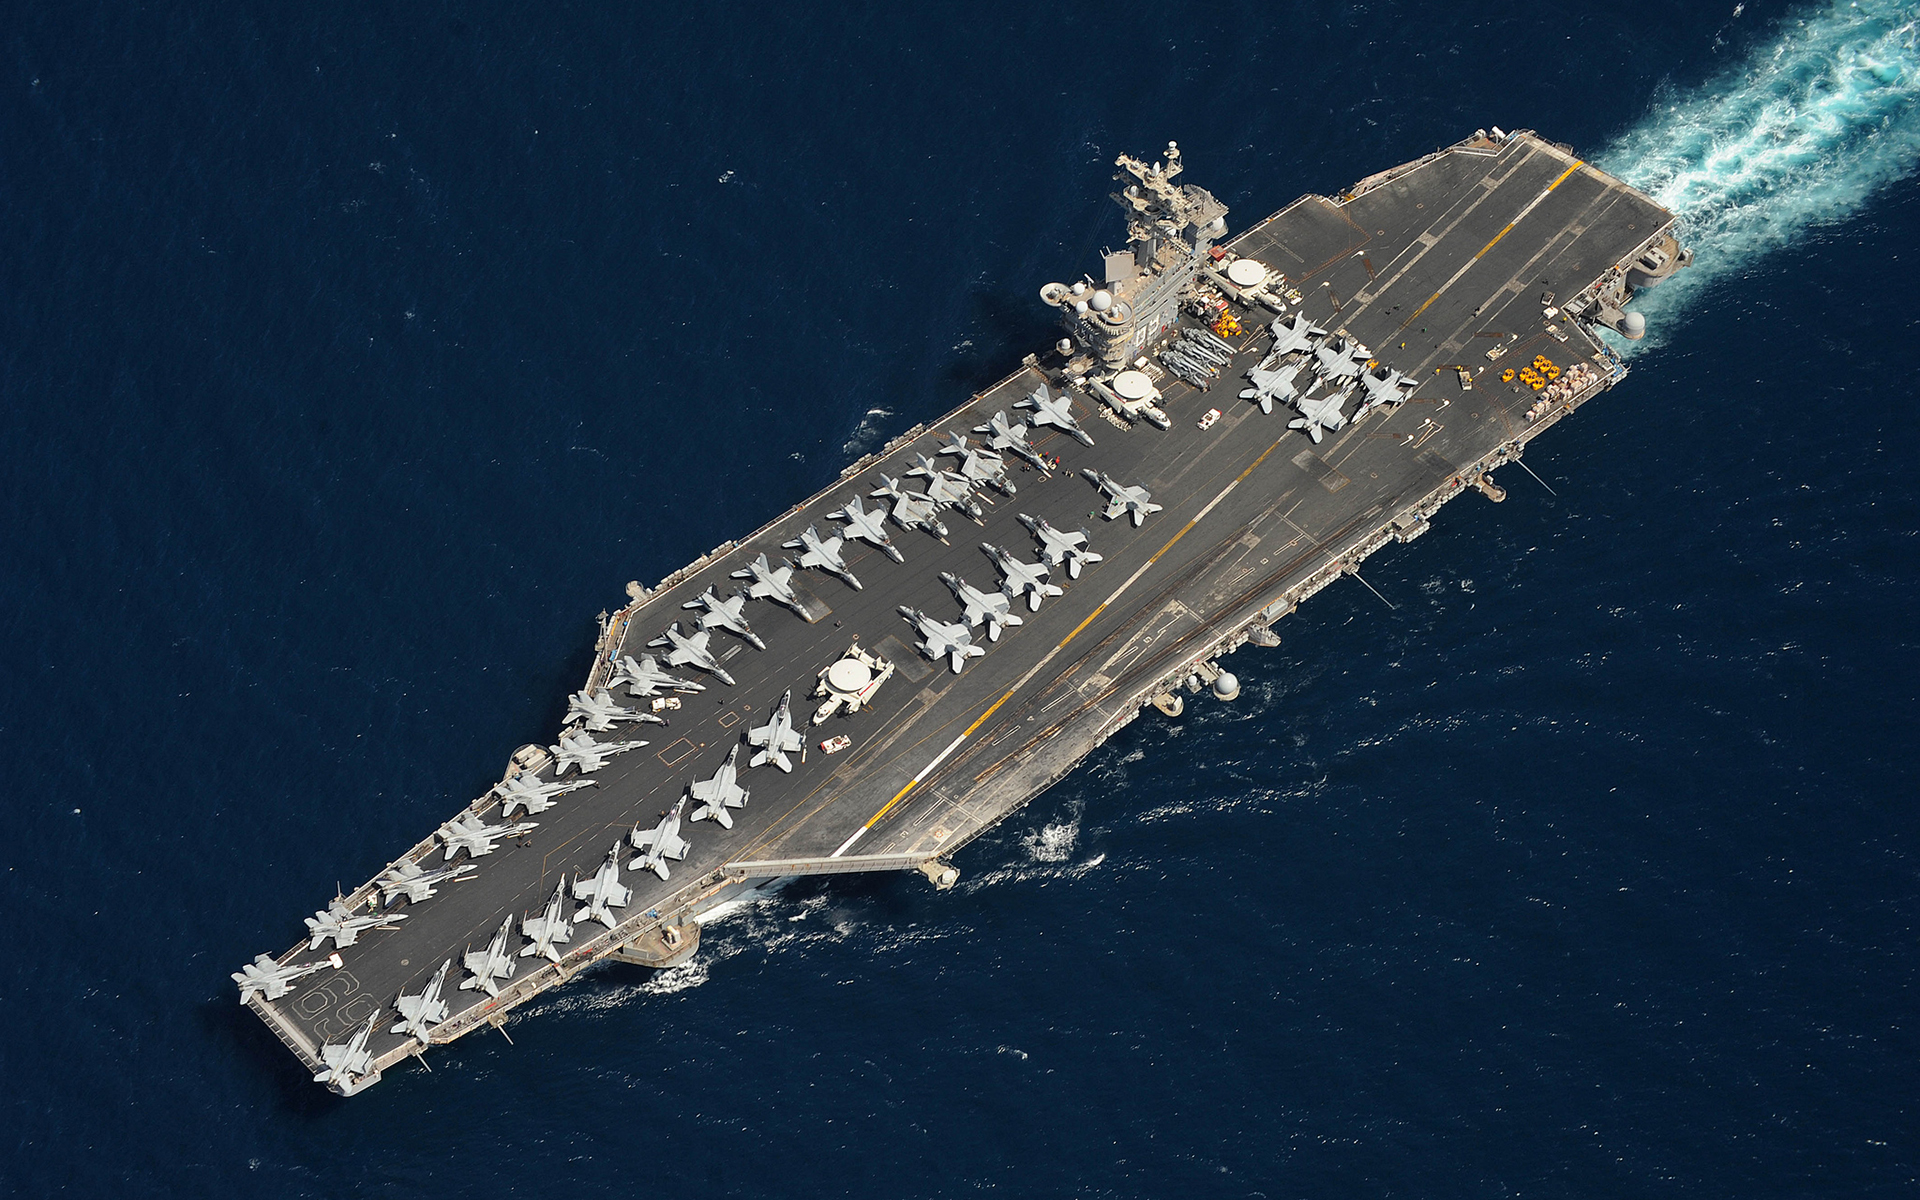 Aircraft carrier deck top view